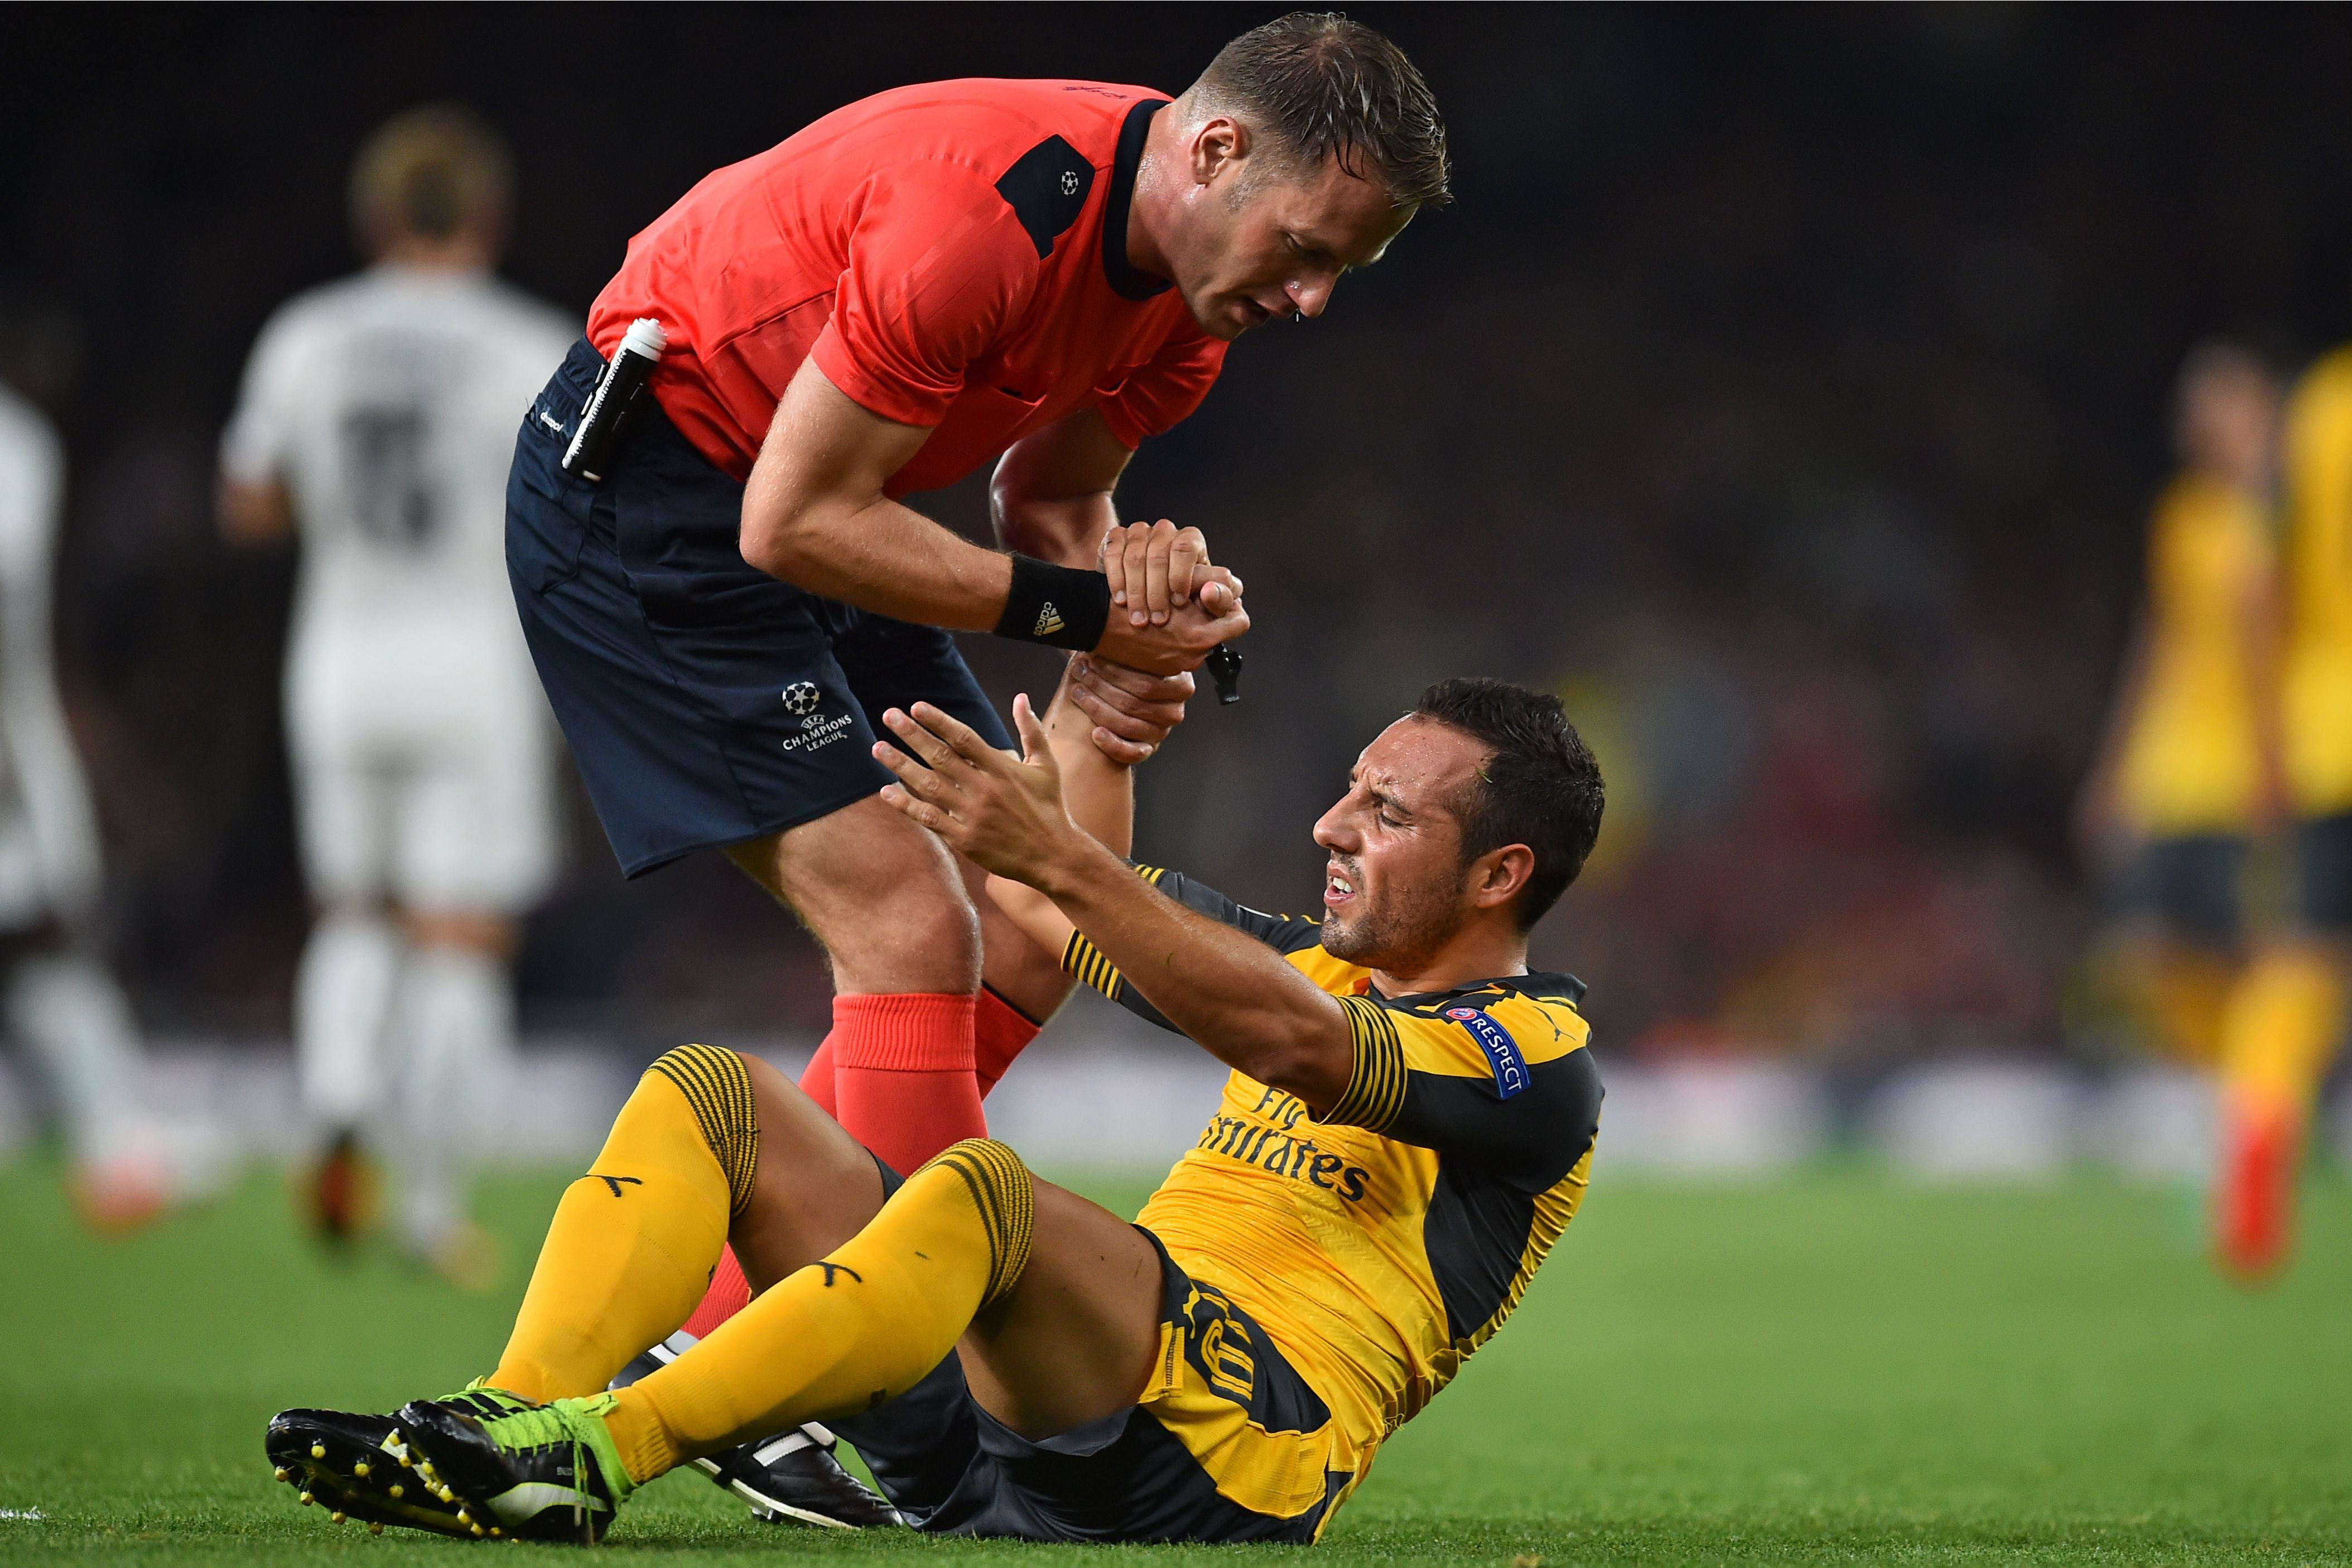 There remains no timetable for Santi Cazorla's return to action